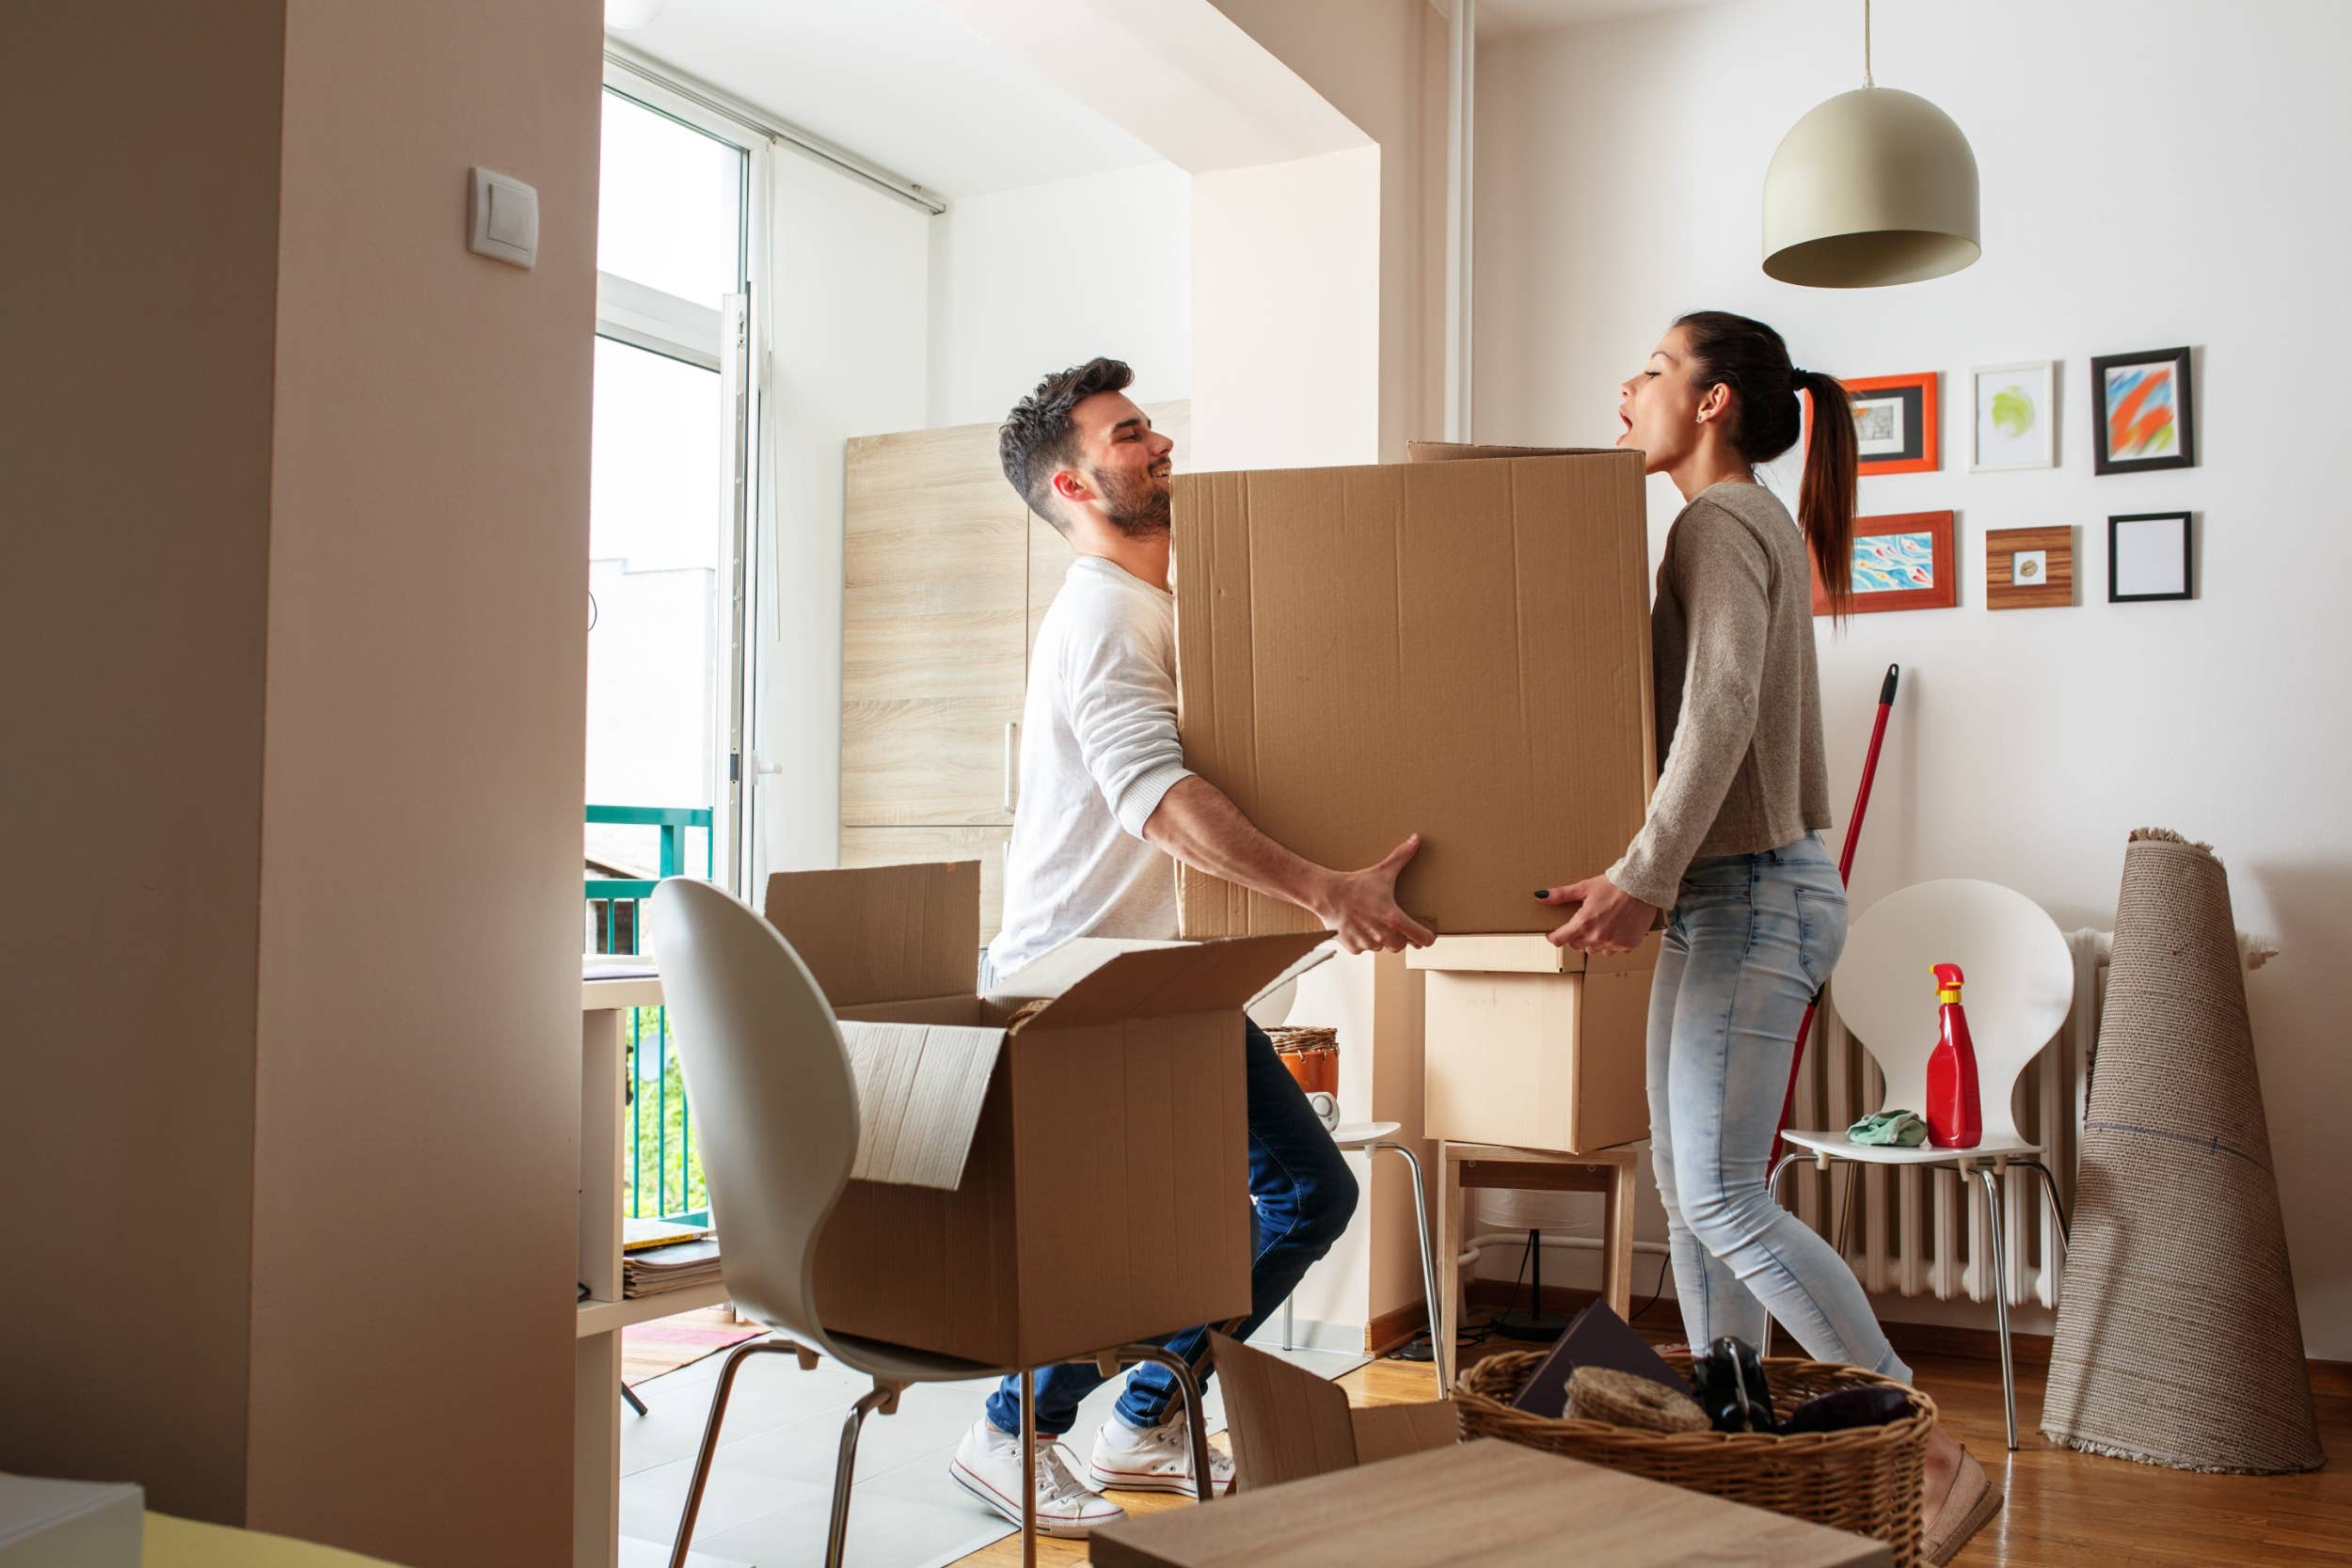 Completed Your College? Pros and Cons of Relocating Your Home after College